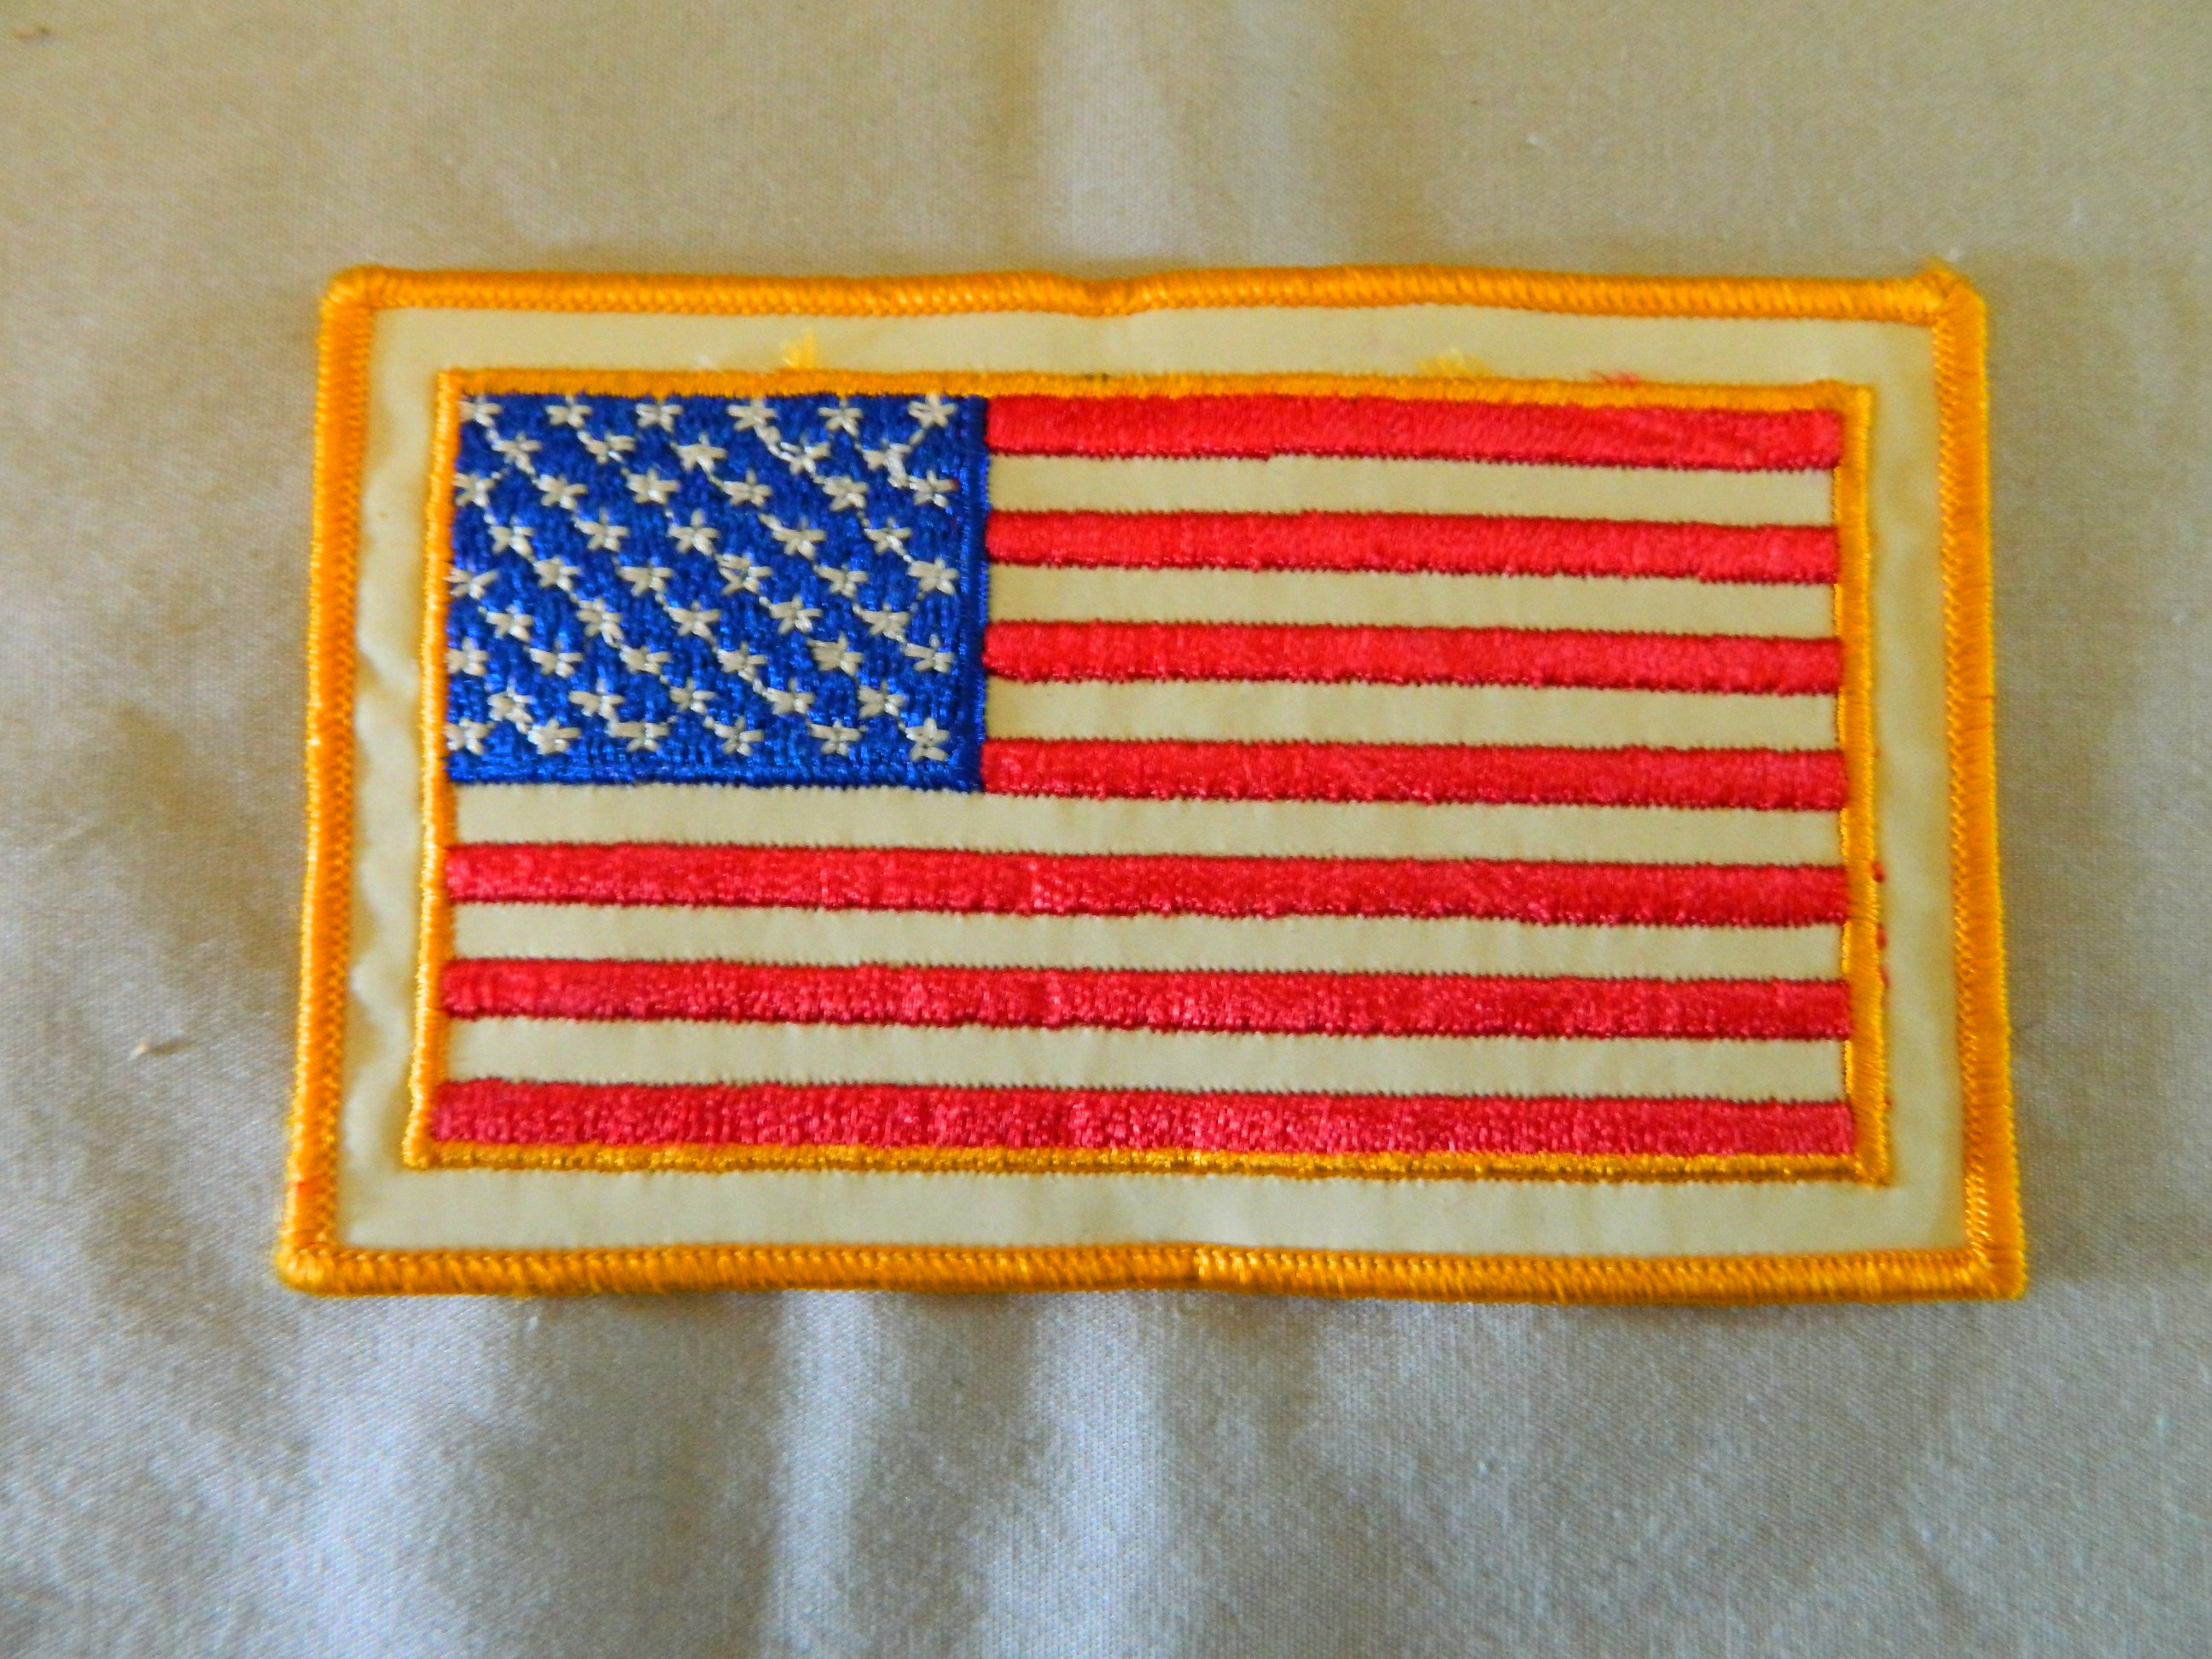 US Flag Patch- approx 3 in x 5 in.